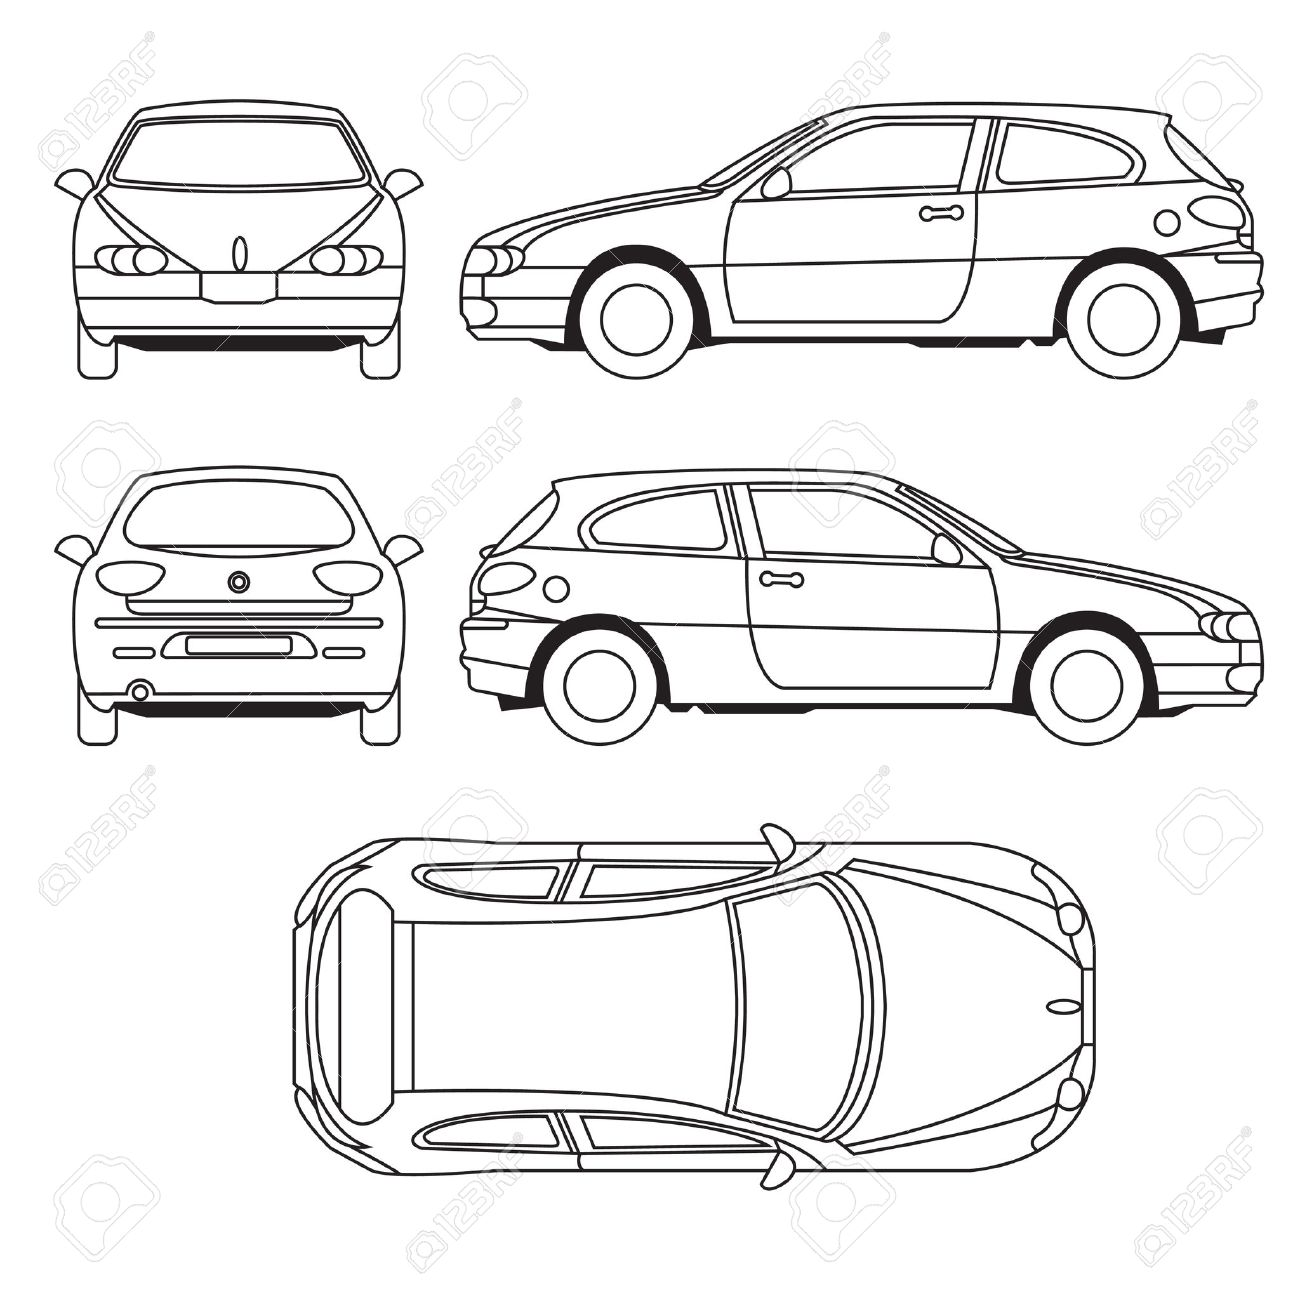 transportation vehicle royalty free cliparts vectors and stock